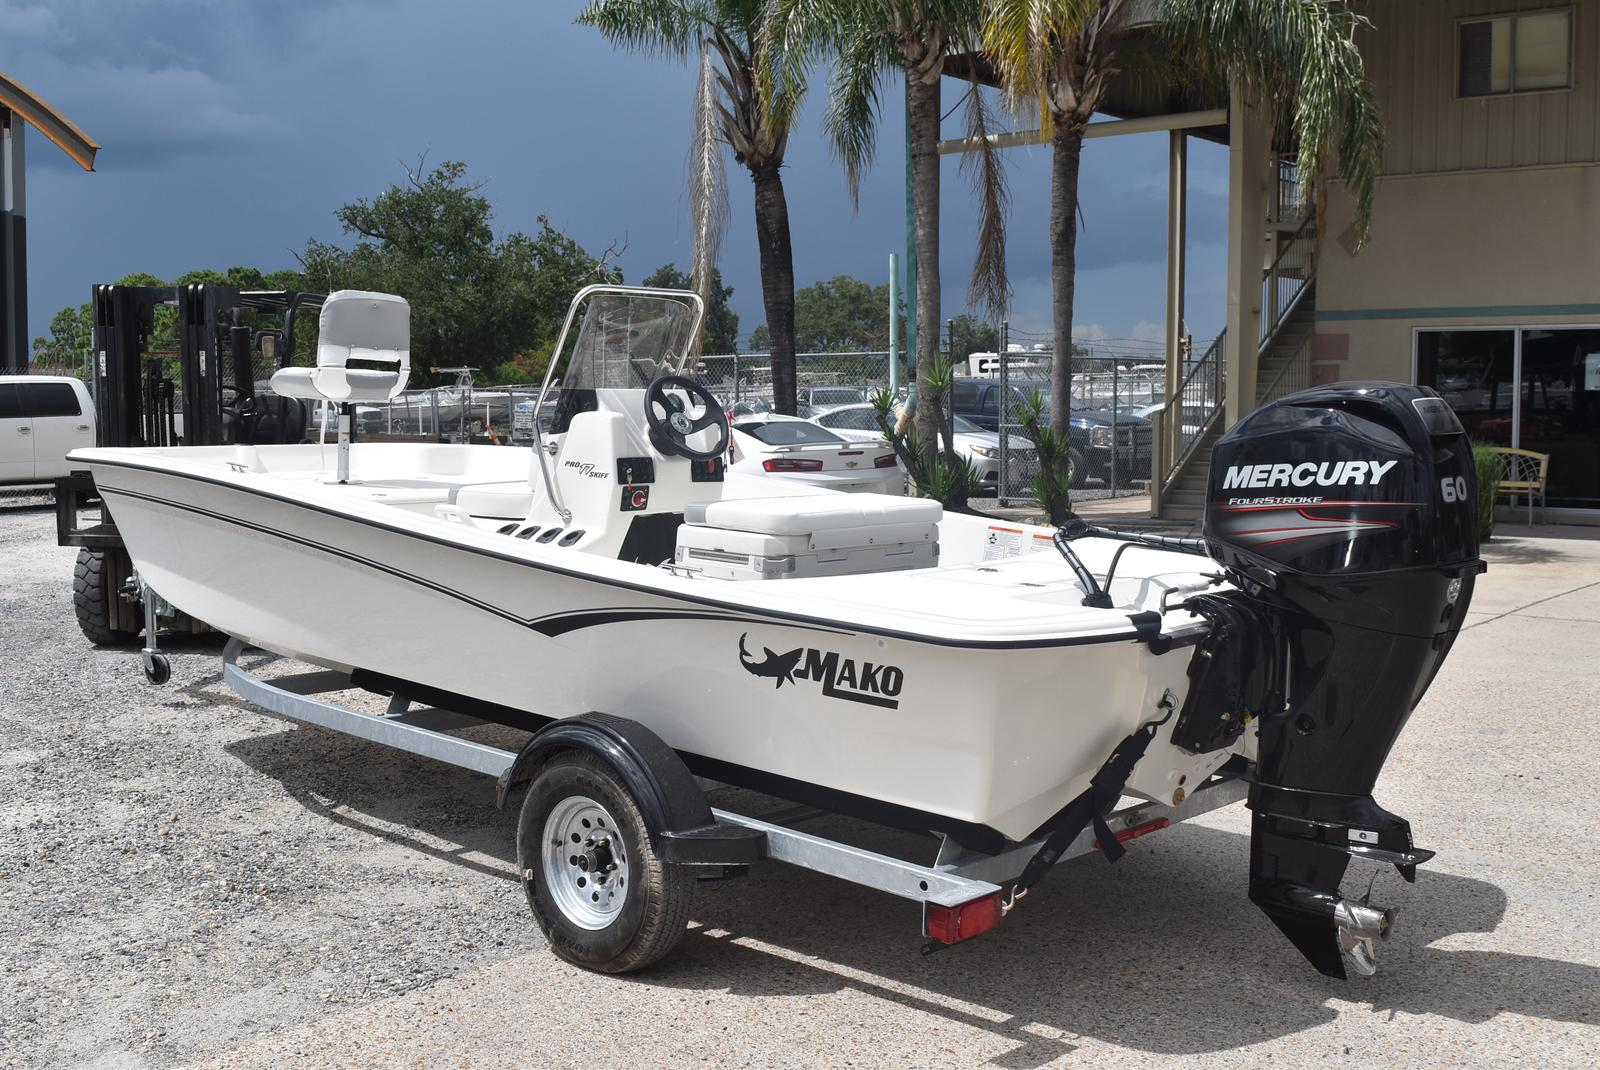 2020 Mako boat for sale, model of the boat is Pro Skiff 17, 75 ELPT & Image # 182 of 702